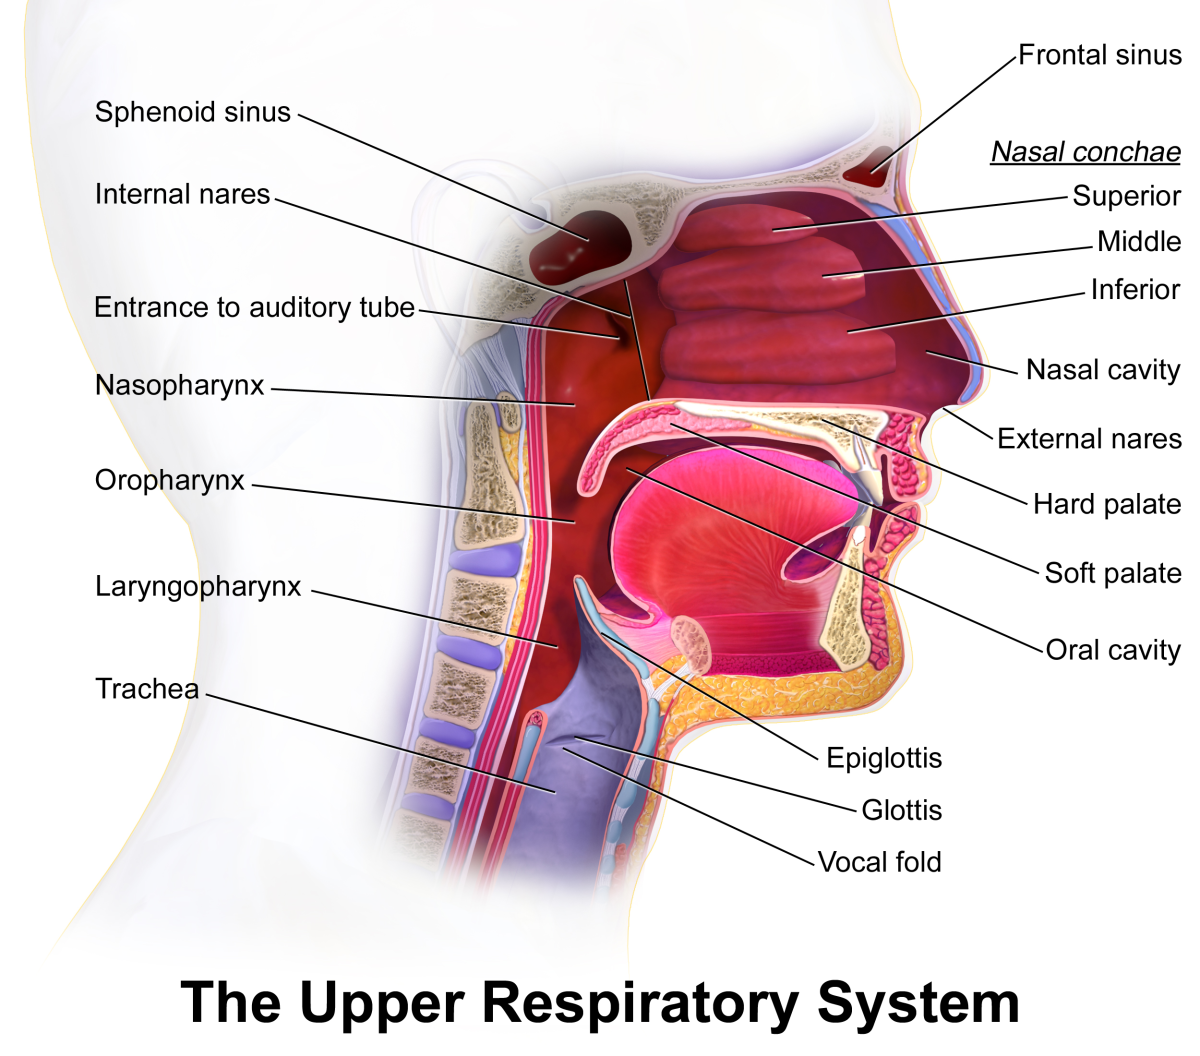 Upper Respiratory System Diagram